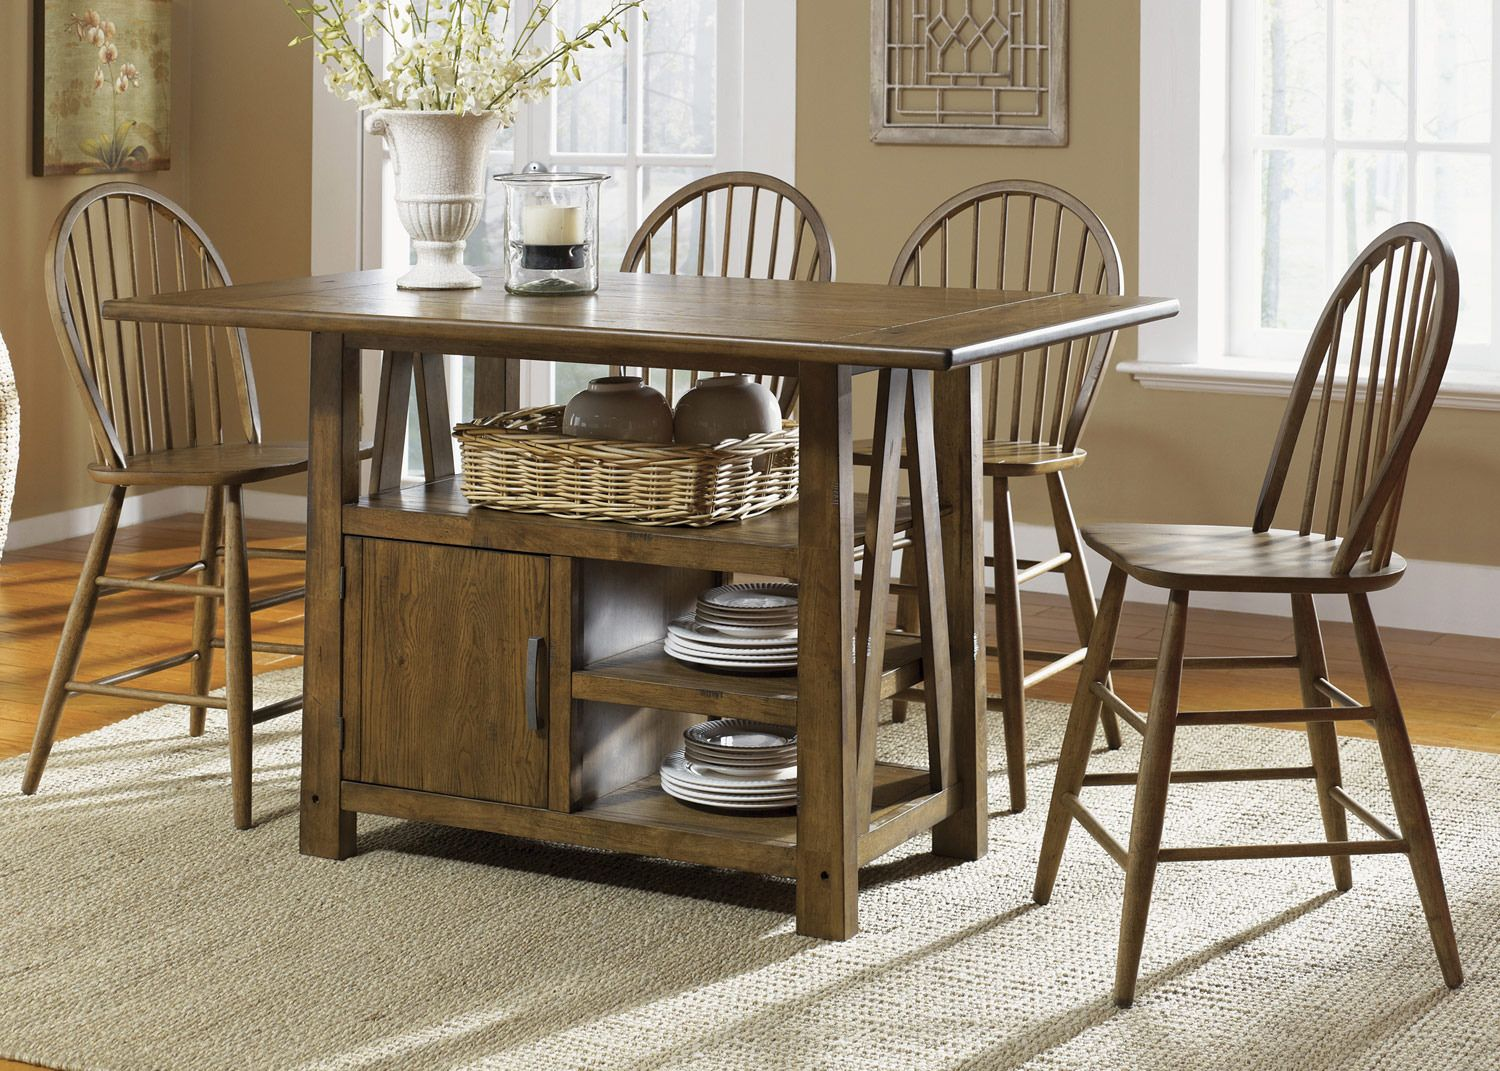 Farmhouse Rectangular Center Island Counter Height Table By Liberty Home Gallery Kitchen Table With Storage Kitchen Table Settings Stools For Kitchen Island